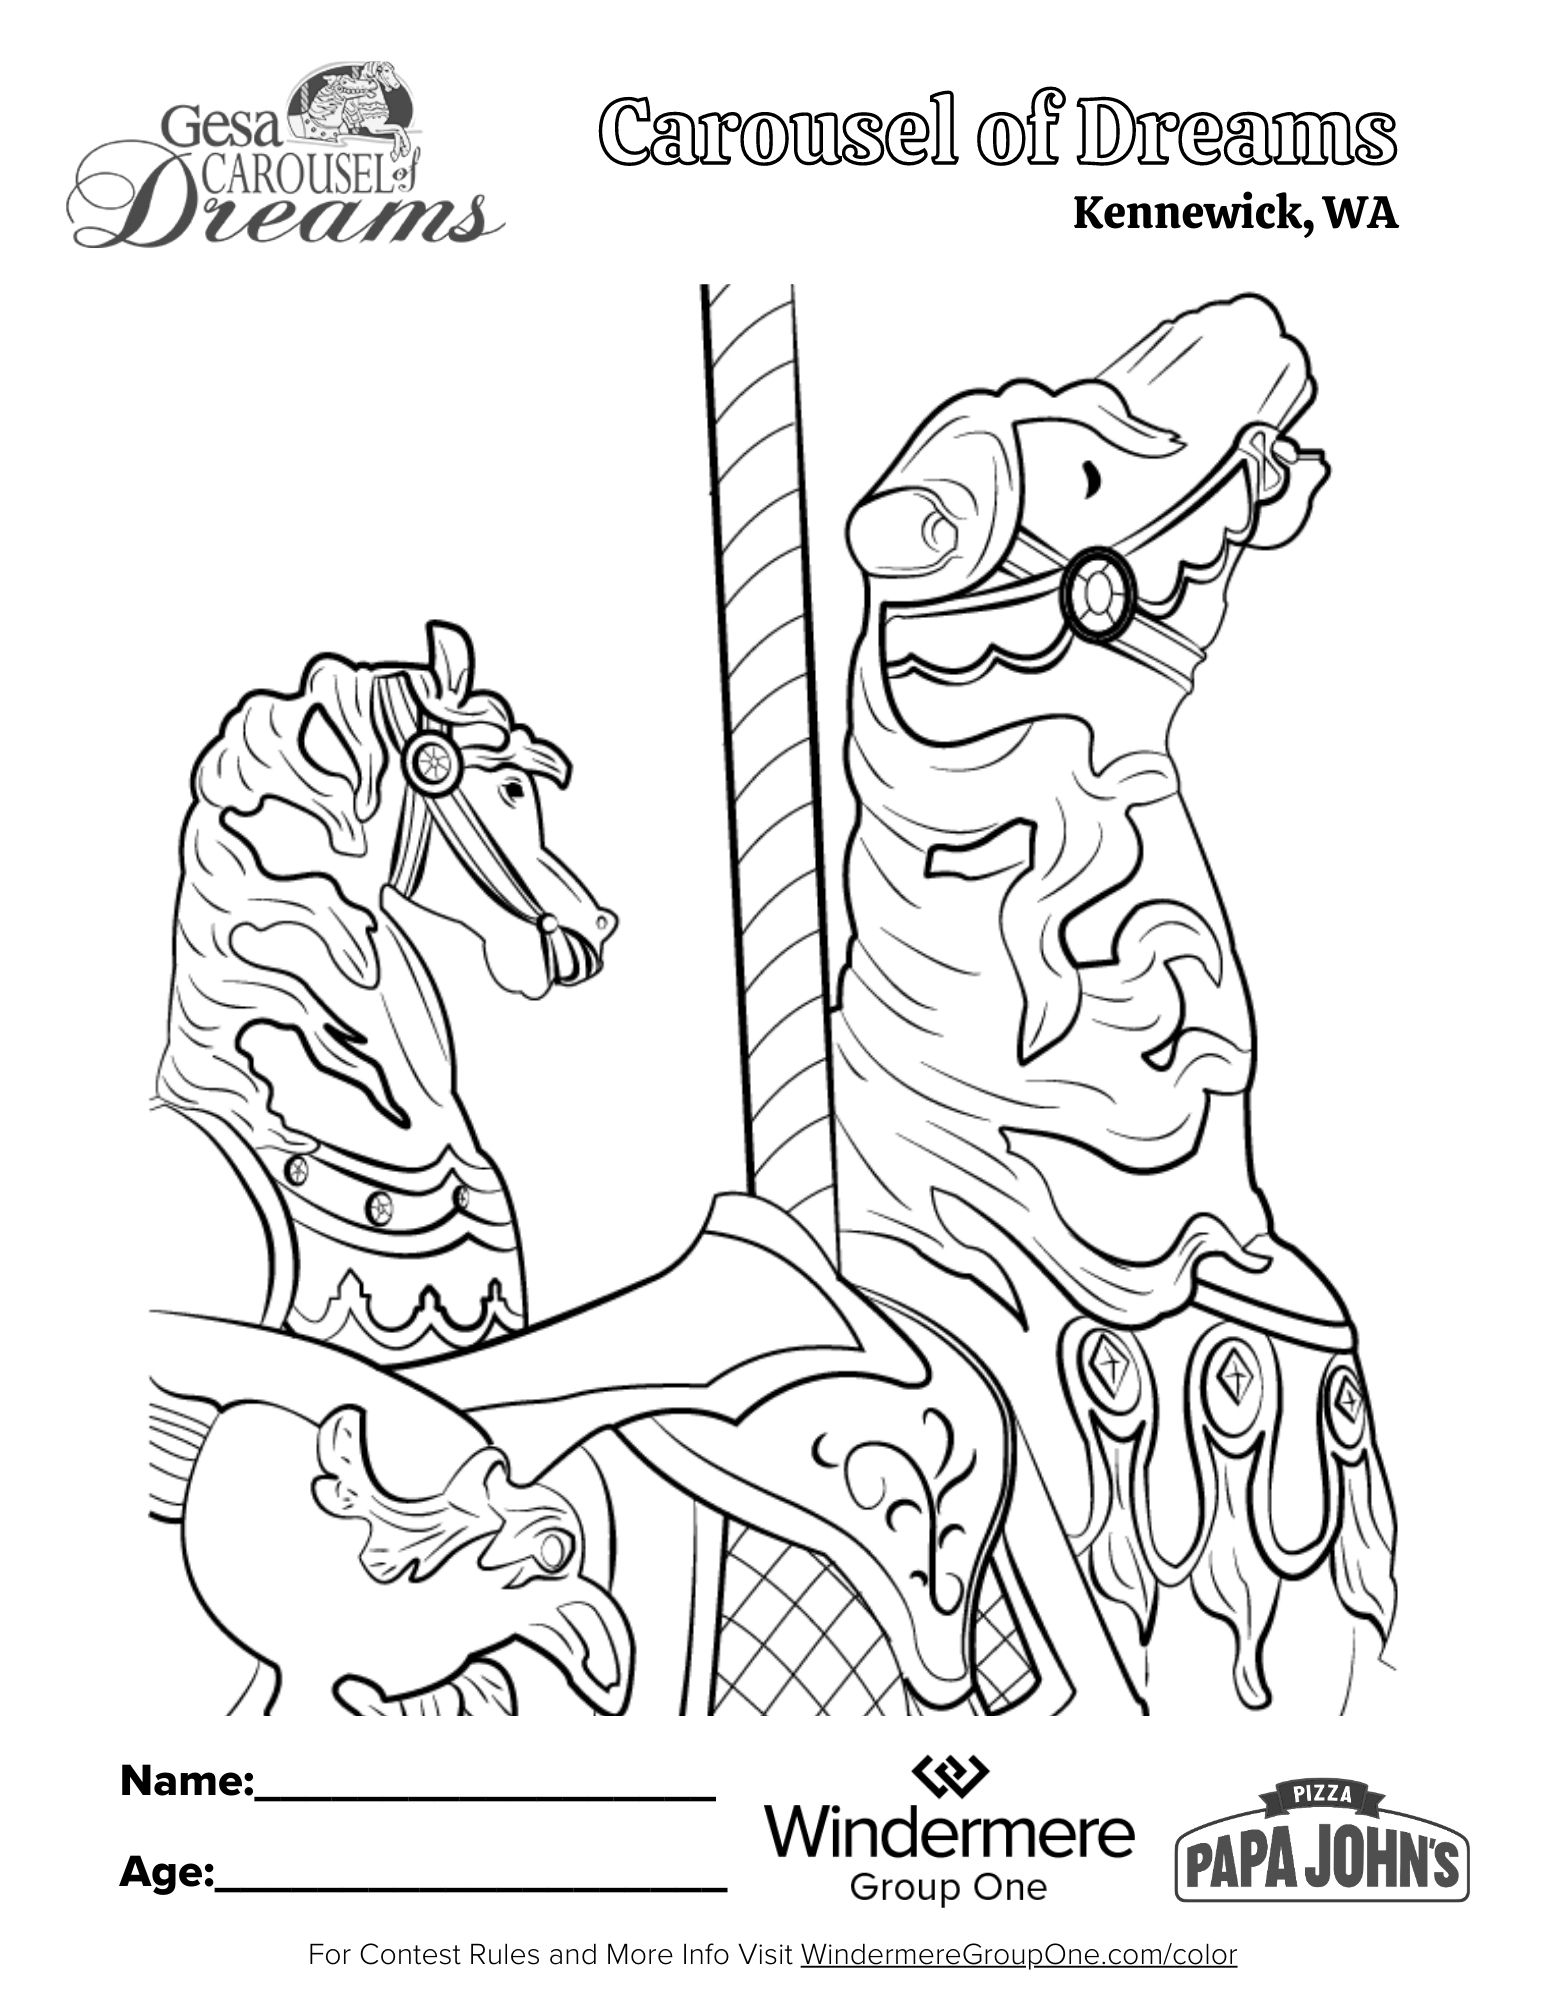 Carousel of Dreams Coloring Page